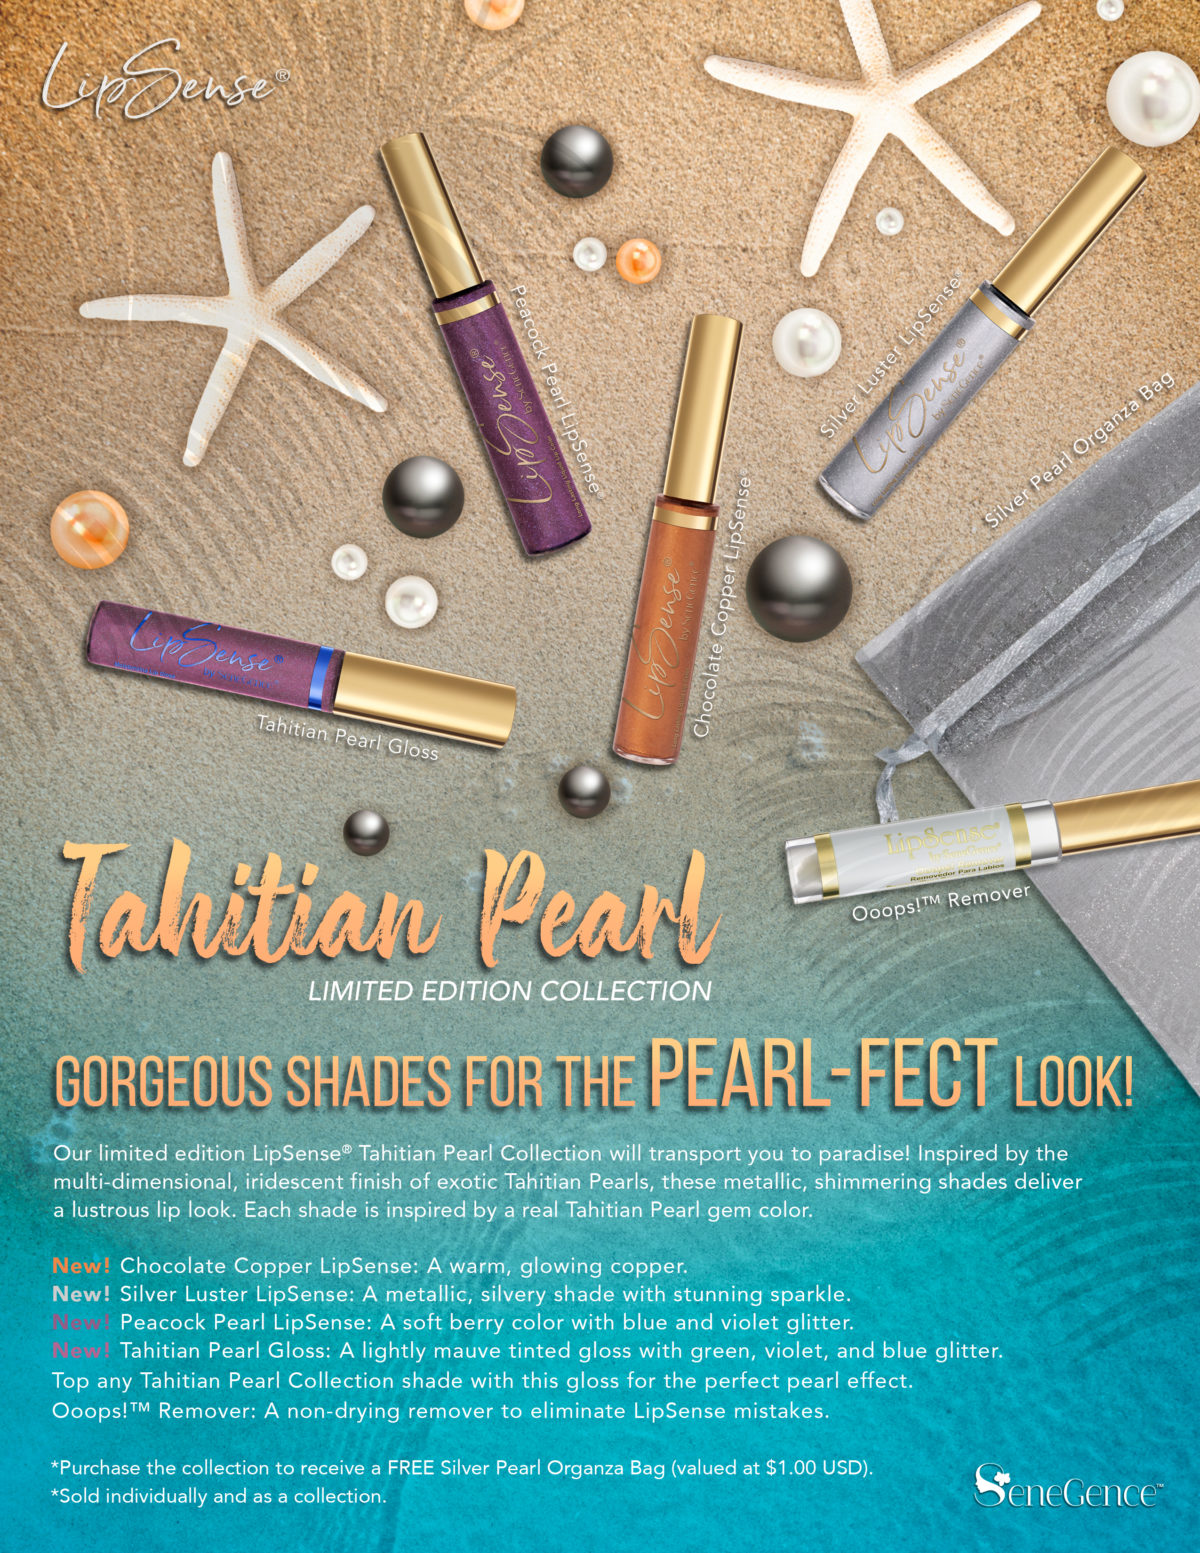 Introducing The LipSense Tahitian Pearl Collection